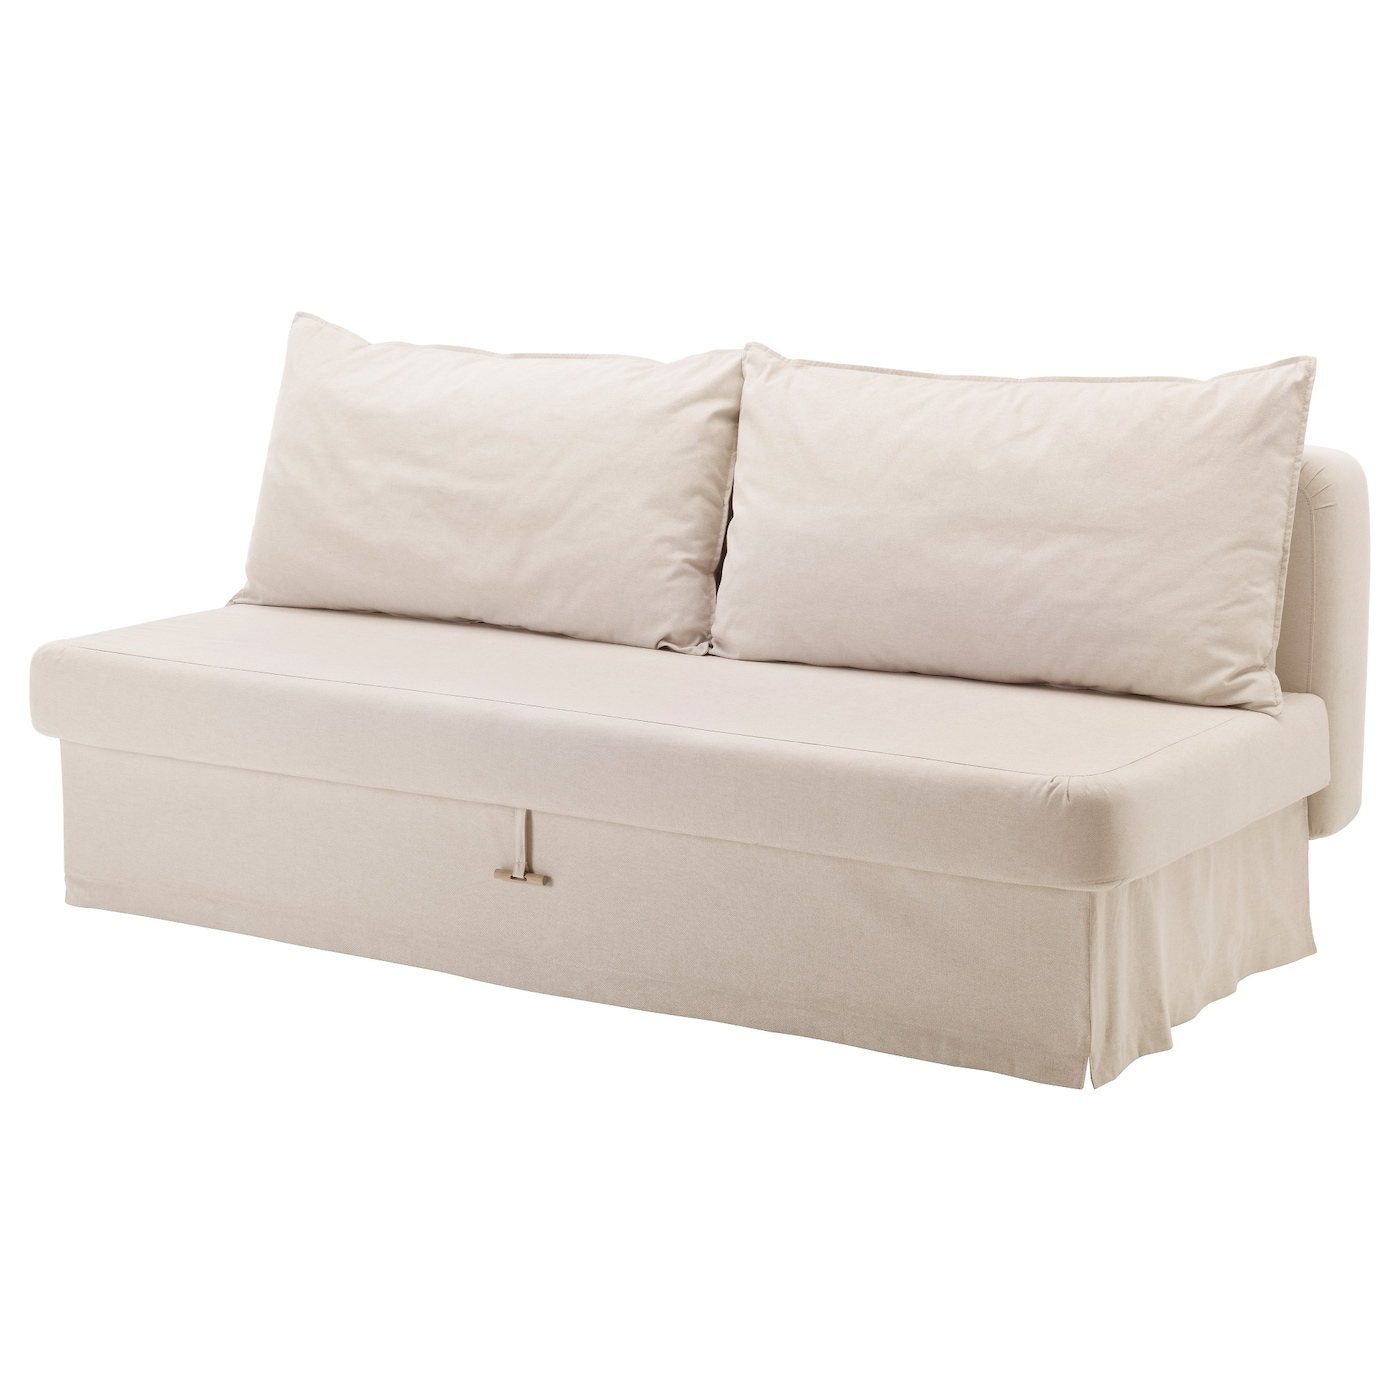 HIMMENE Three seat sofa bed Lofallet beige IKEA